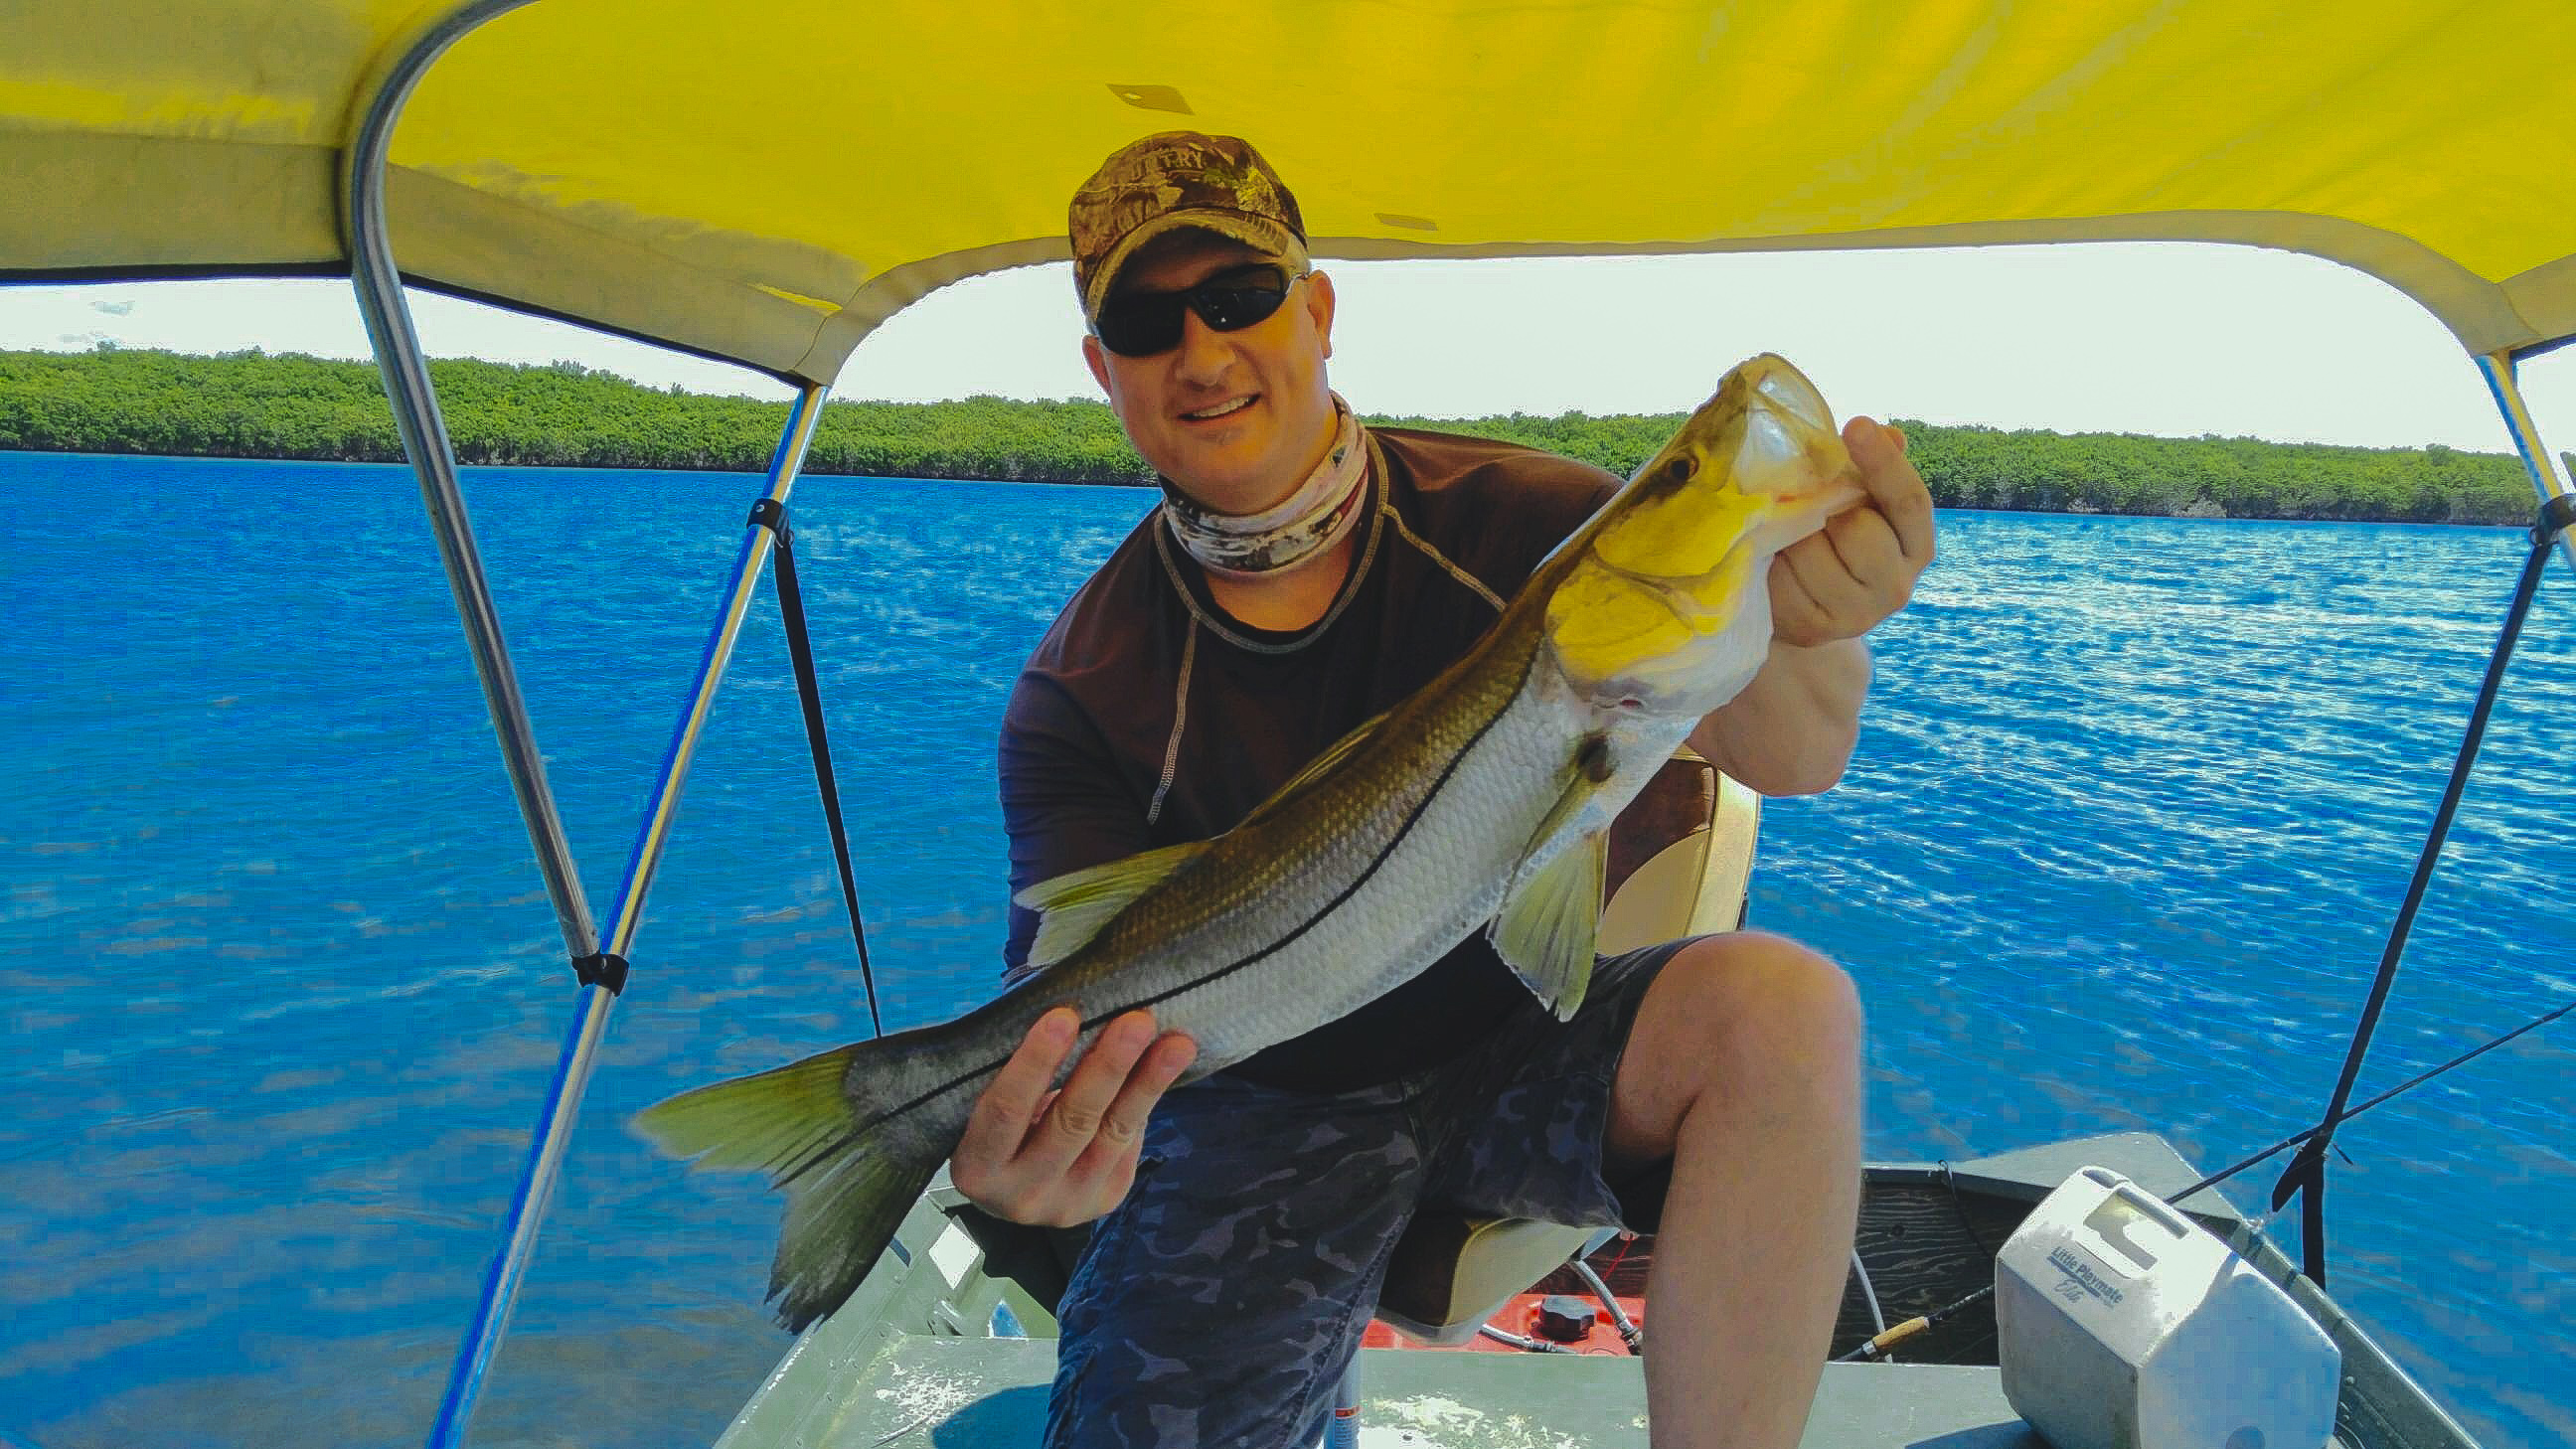 Snook Homosassa fishing guide